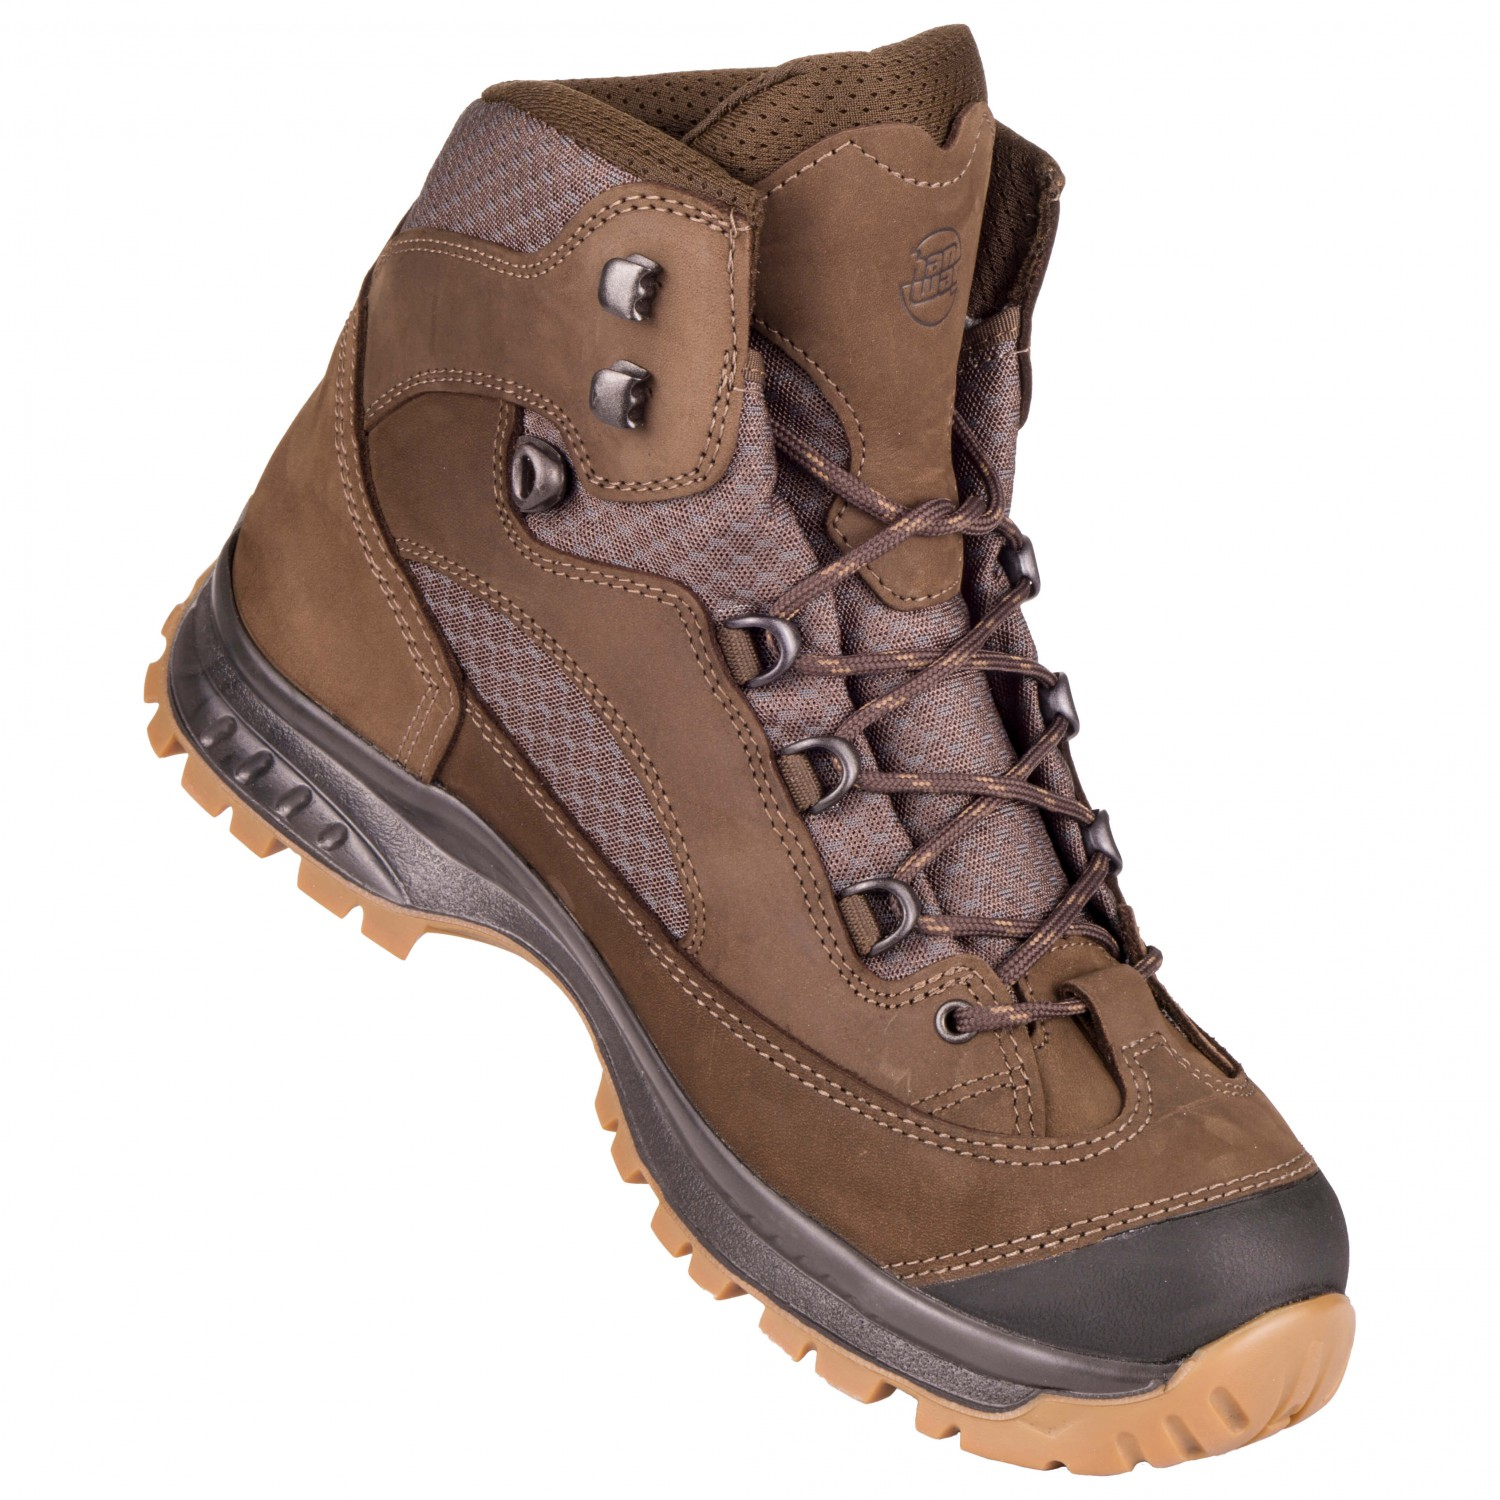 391bbe3d084 Hanwag Banks II Wide GTX - Walking Boots Men s